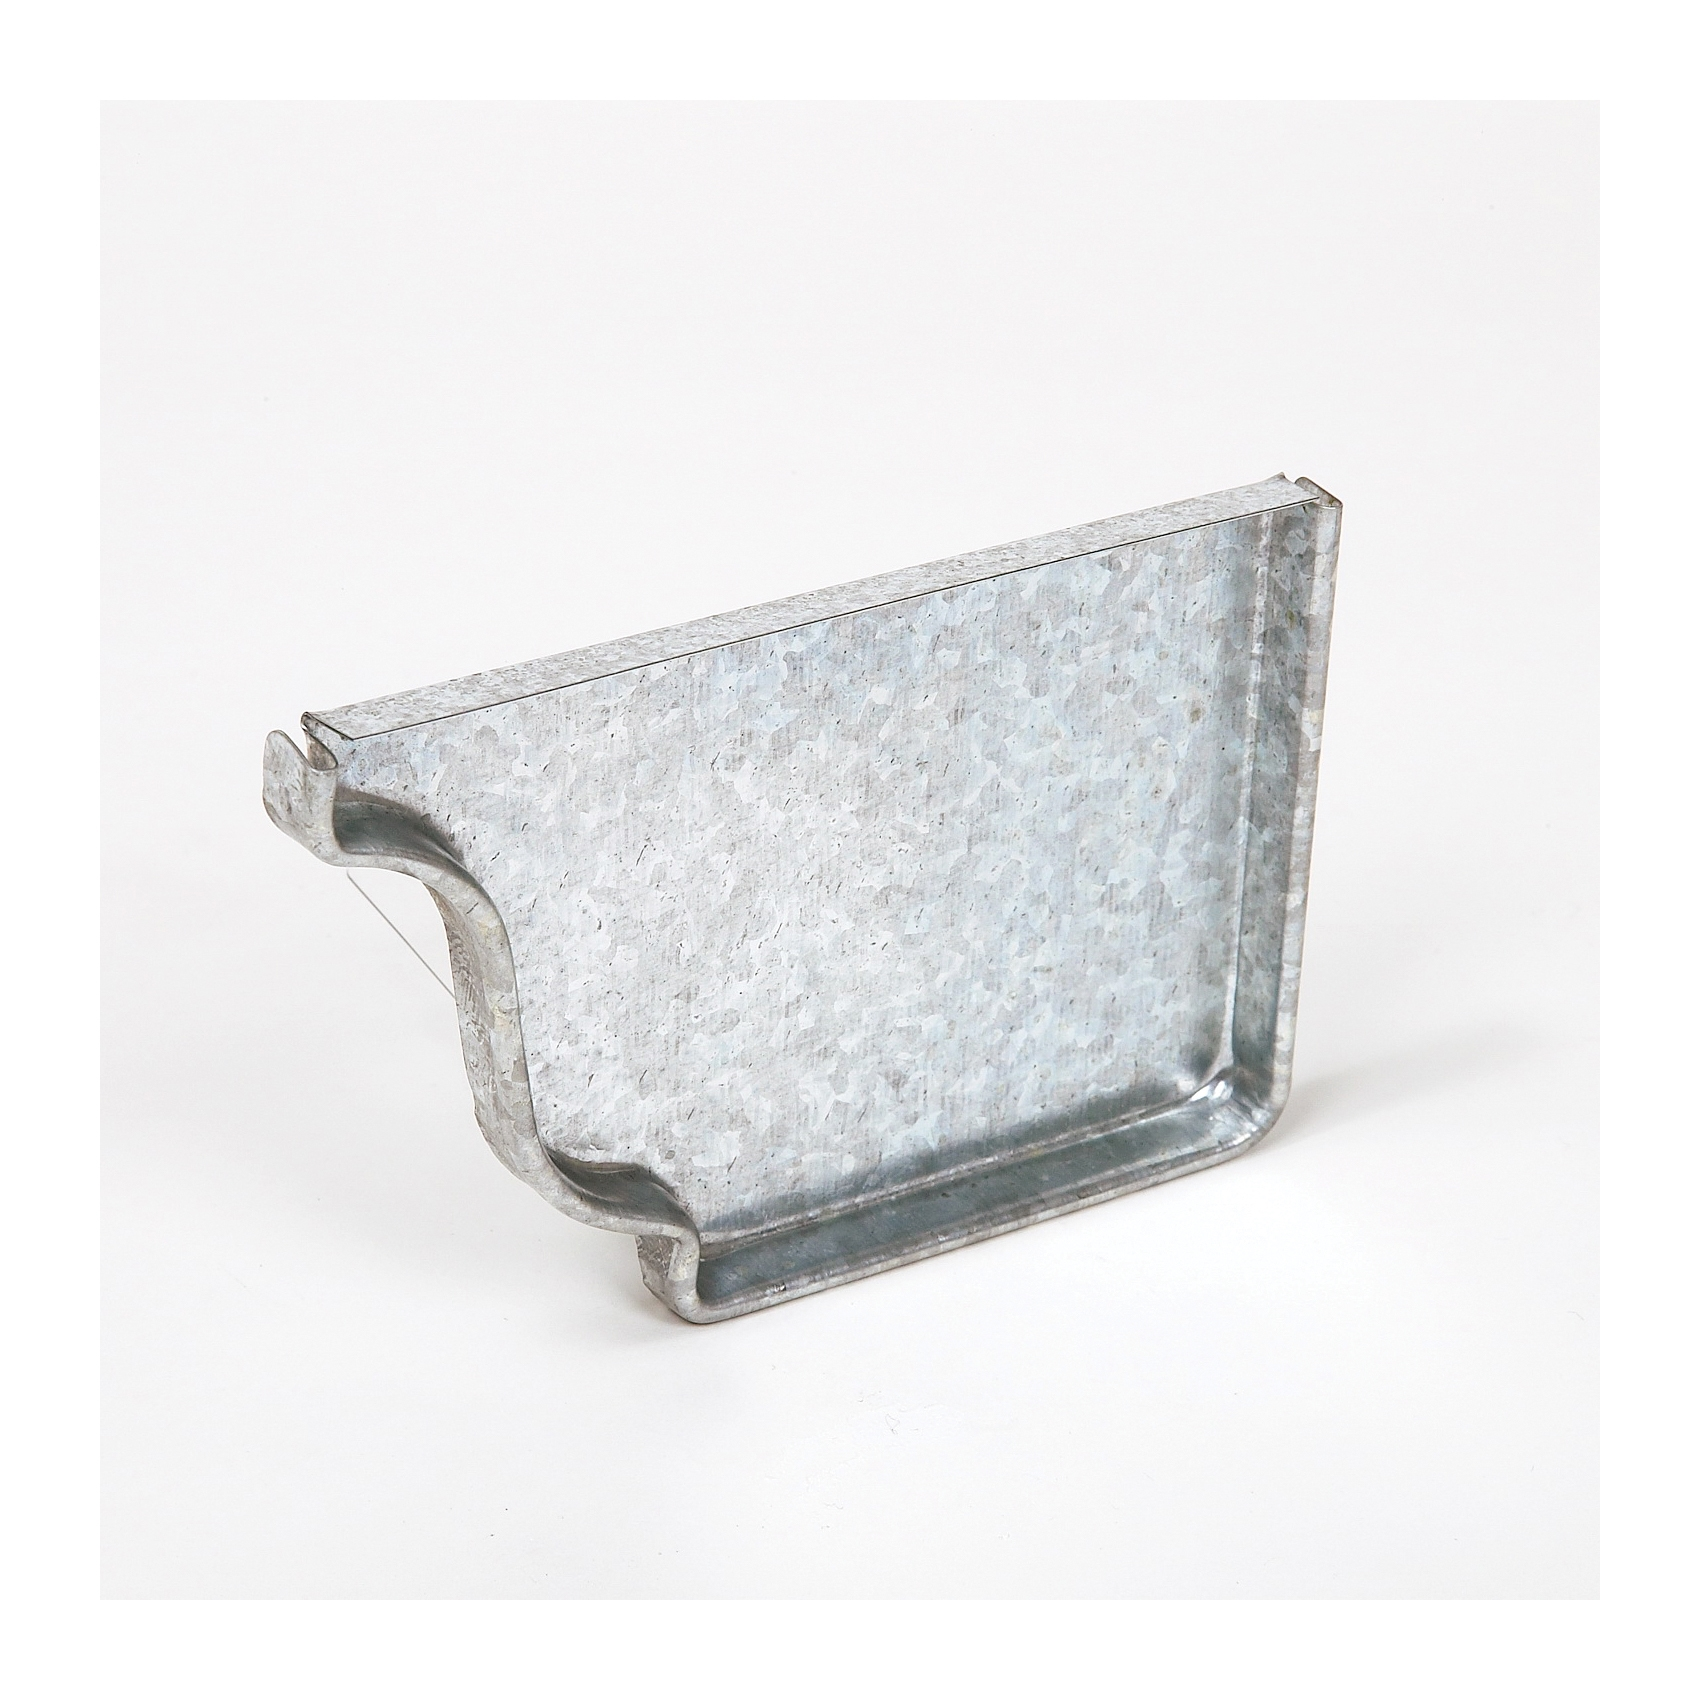 Picture of Amerimax 29206 Gutter End Cap, 5 in L, Galvanized Steel, For: 5 in K-Style Gutter System